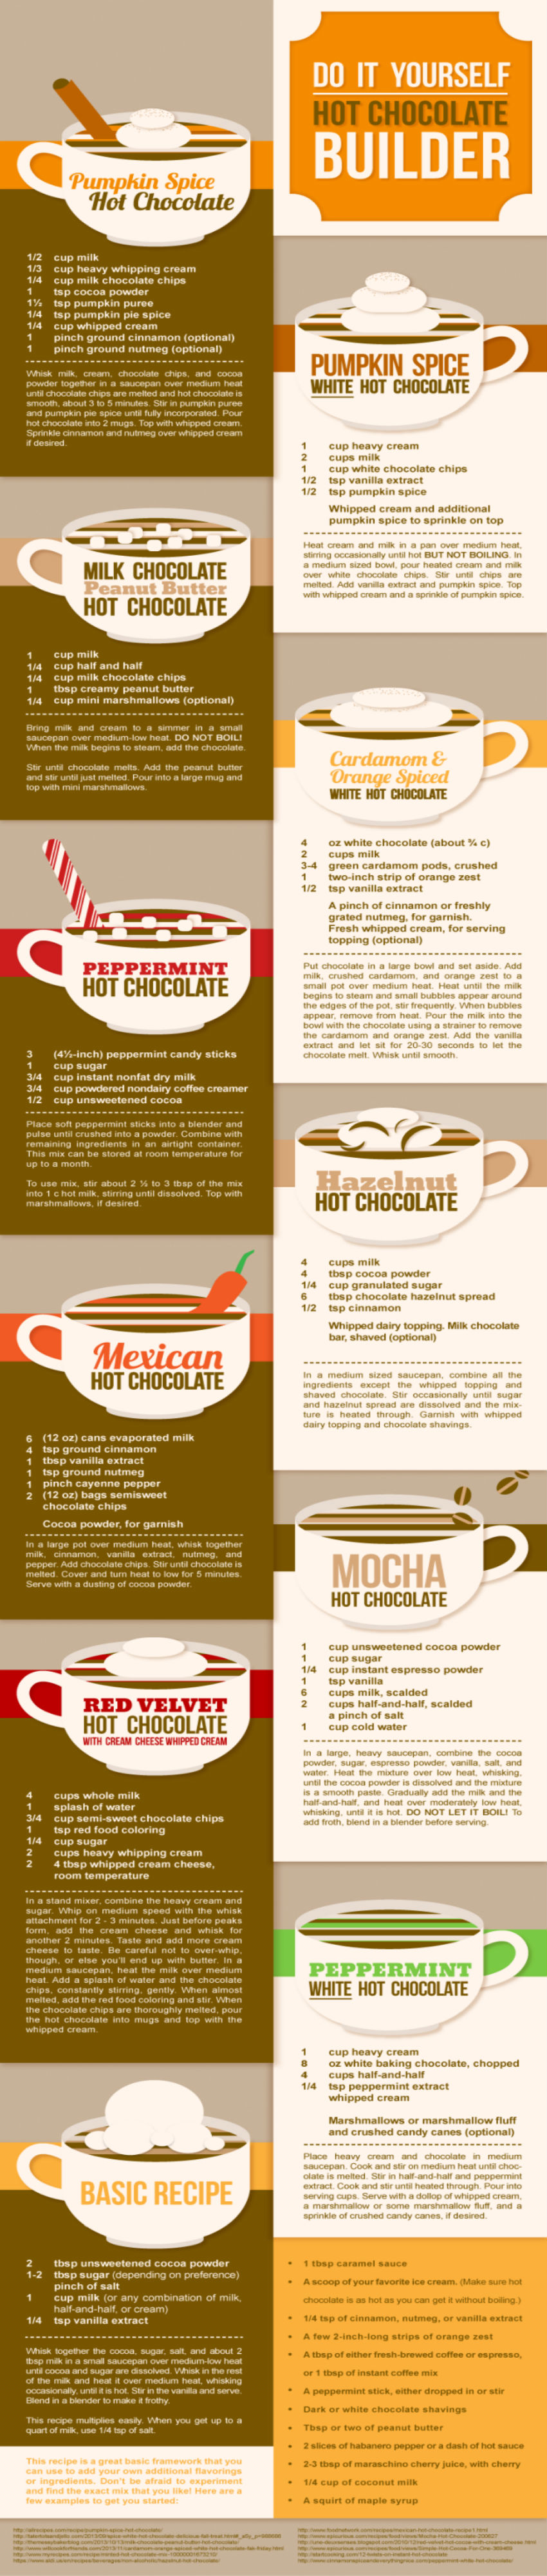 Get creative with your hot chocolate! Image Source: Pinterest